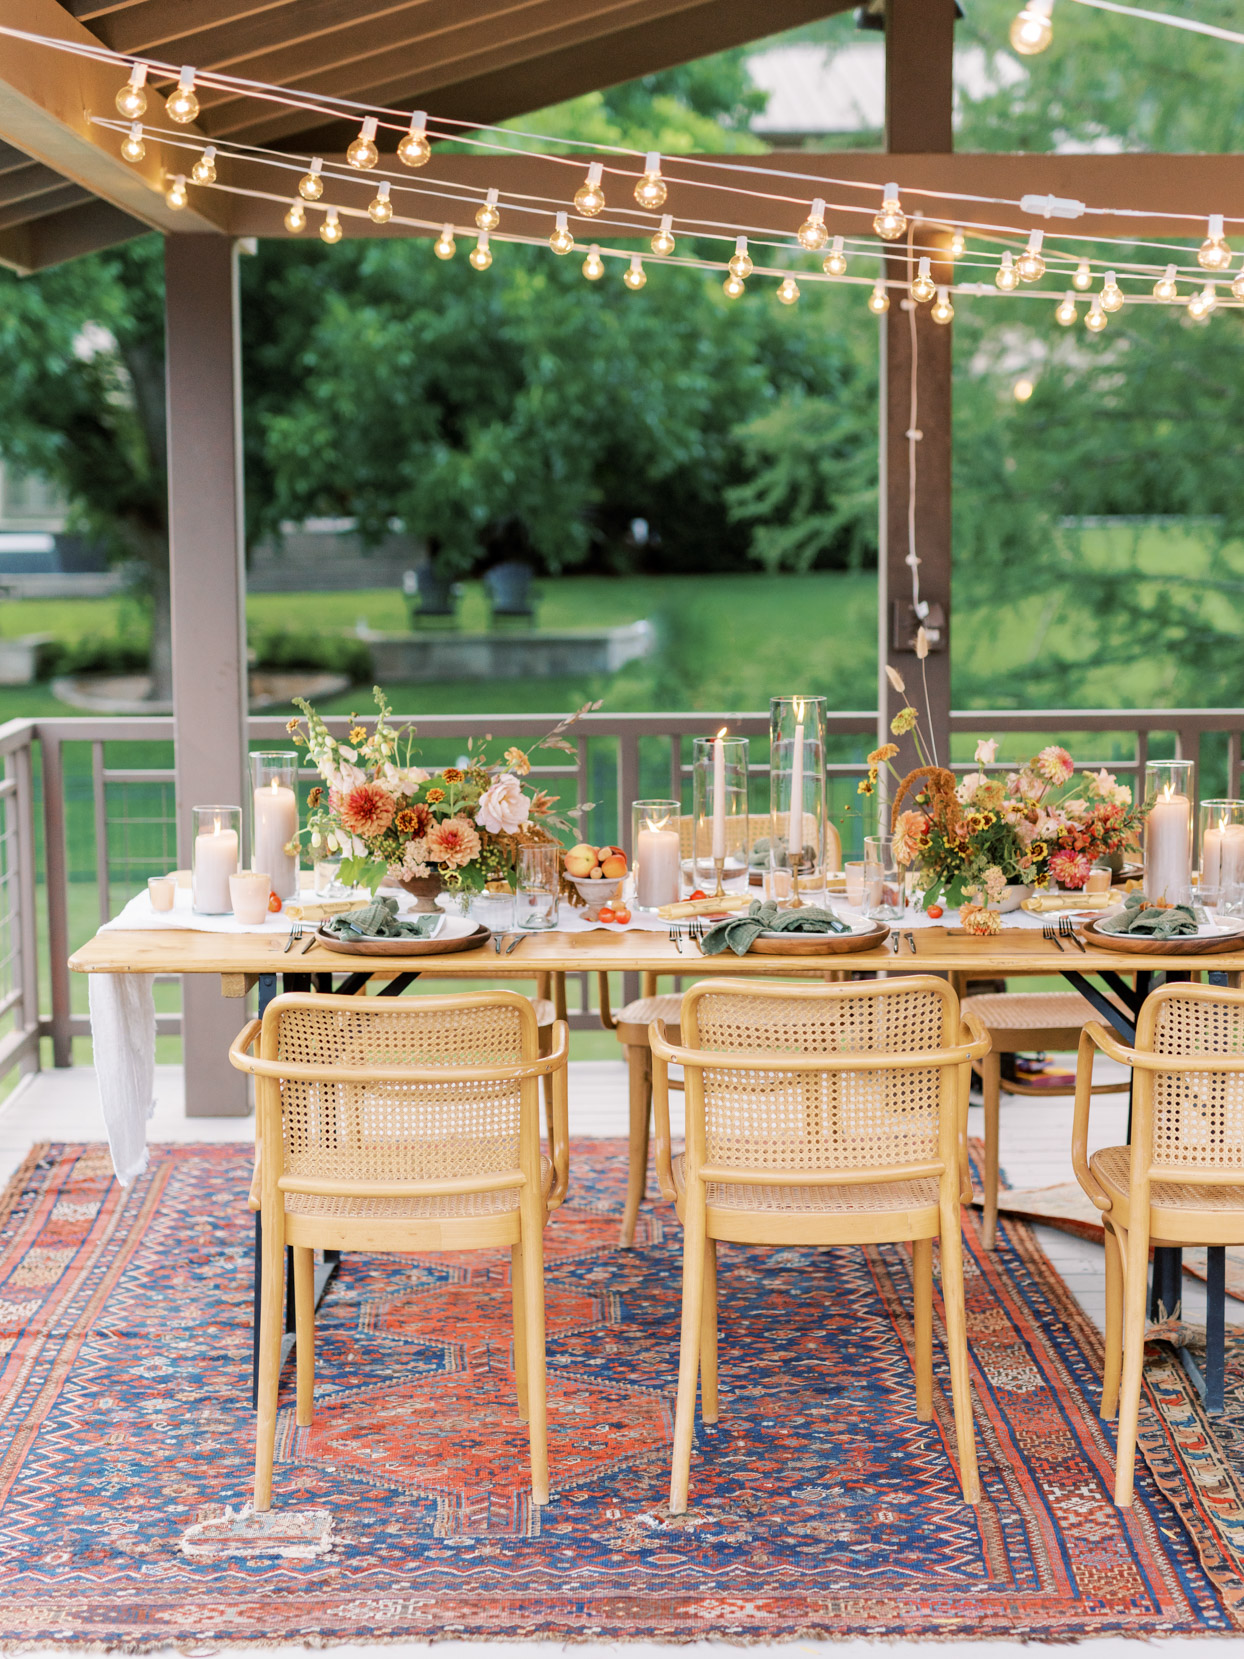 al fresco dining set up with bohemian rug and warm tones table decor